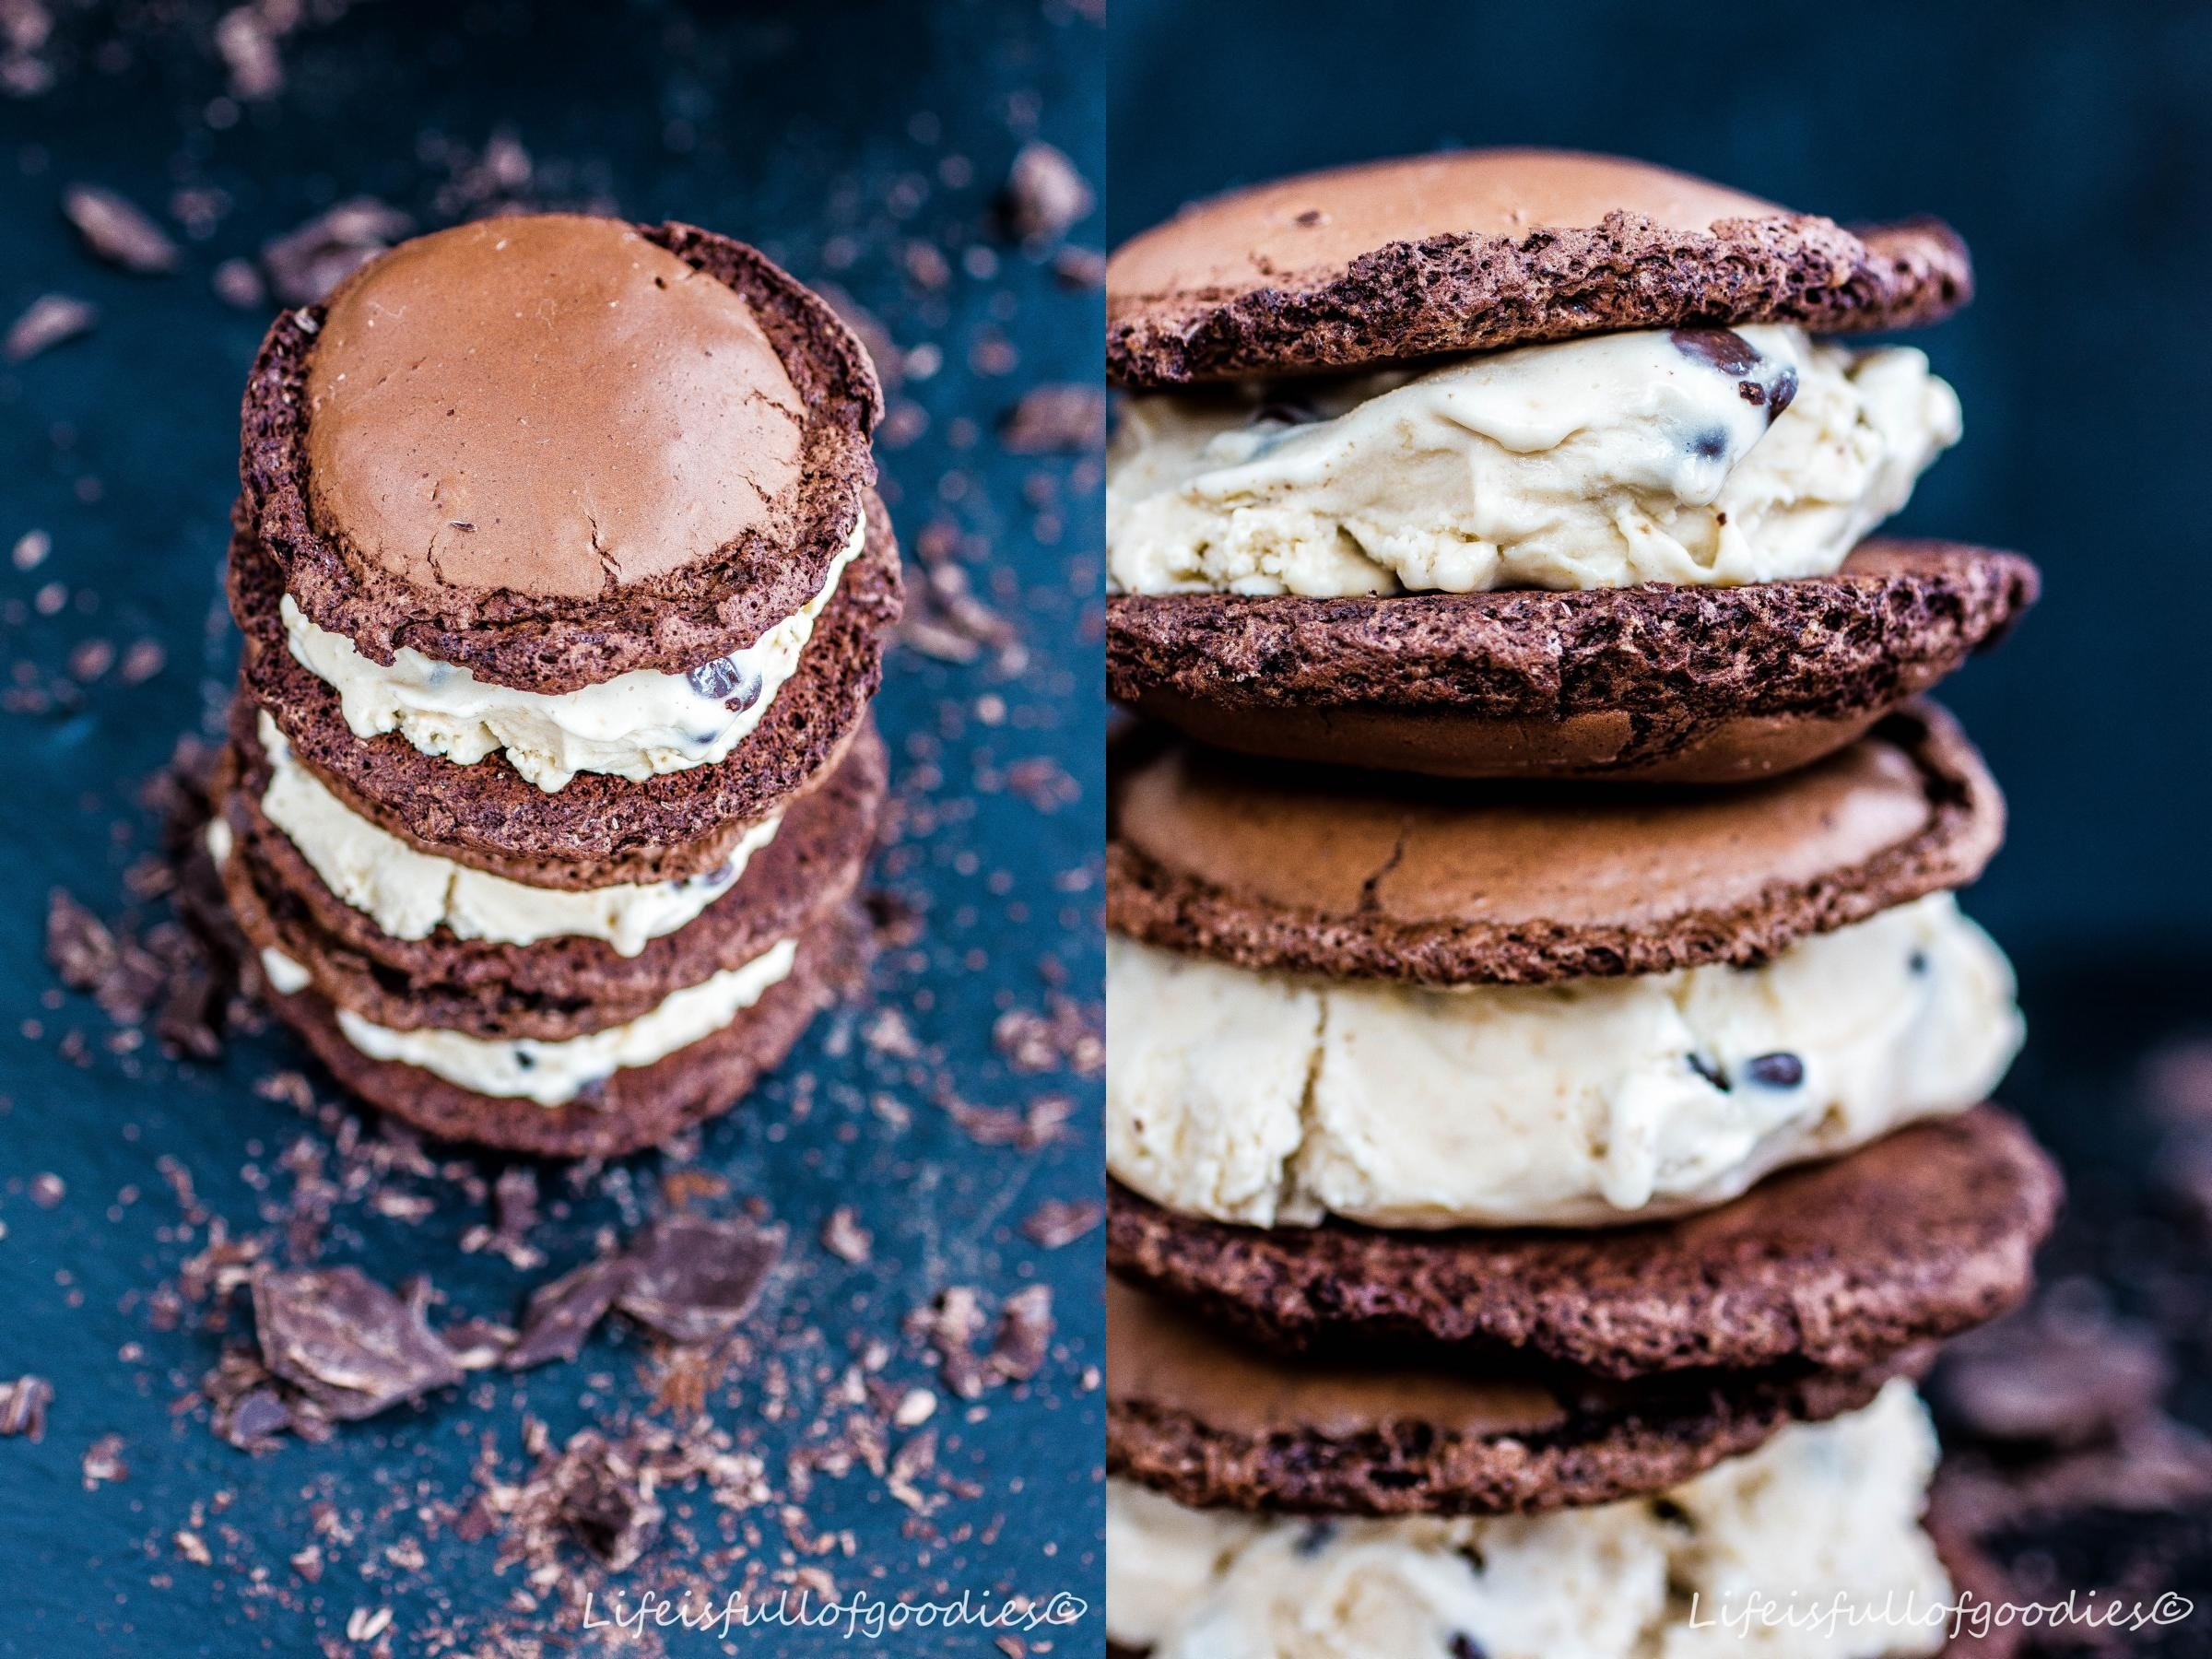 Banana Chocolate Ice Cream Sandwich